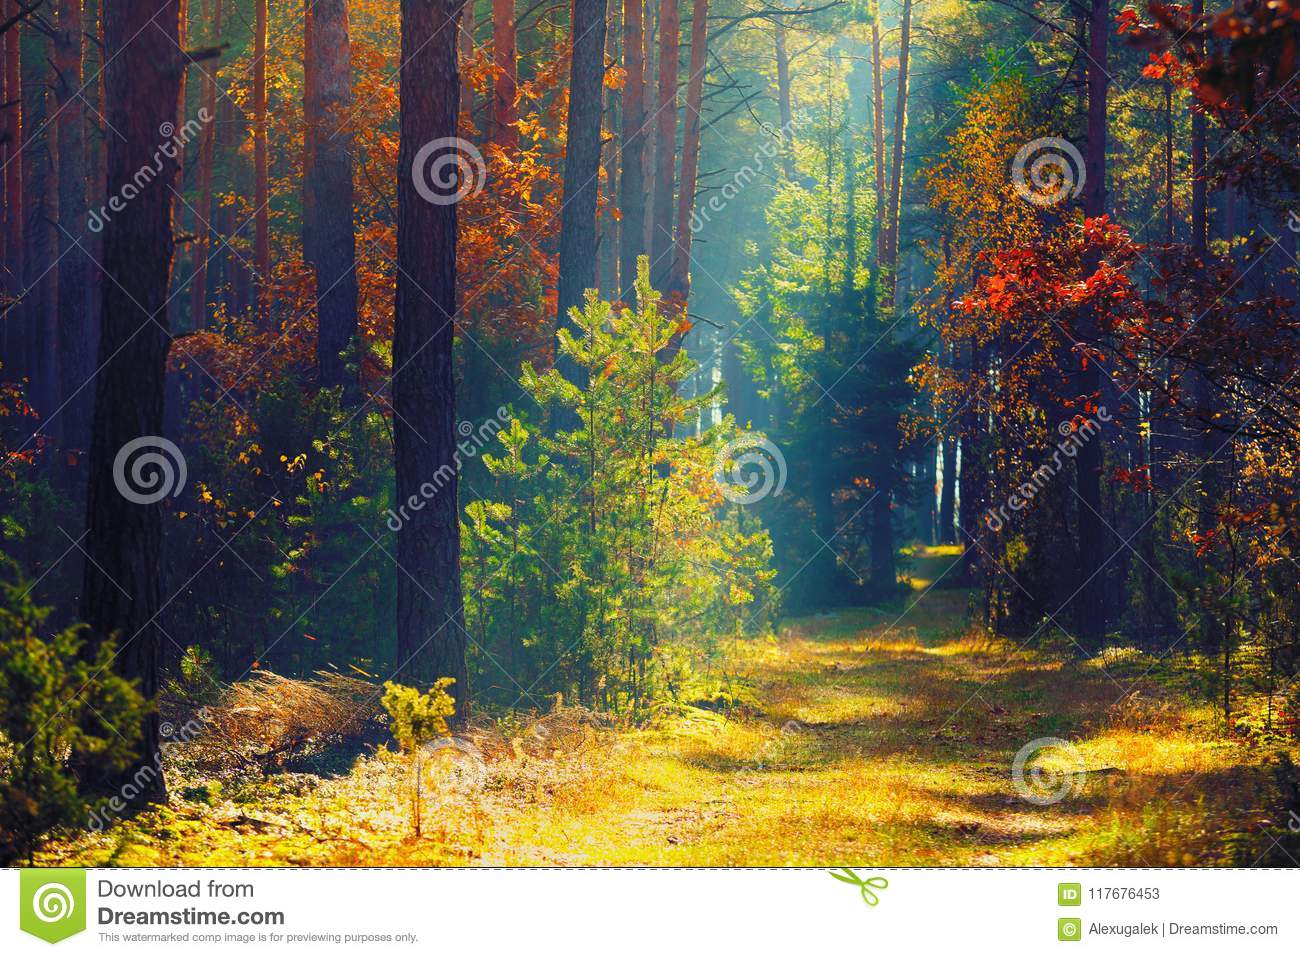 Autumn forest. Sunny autumn nature. Path in colorful forest with